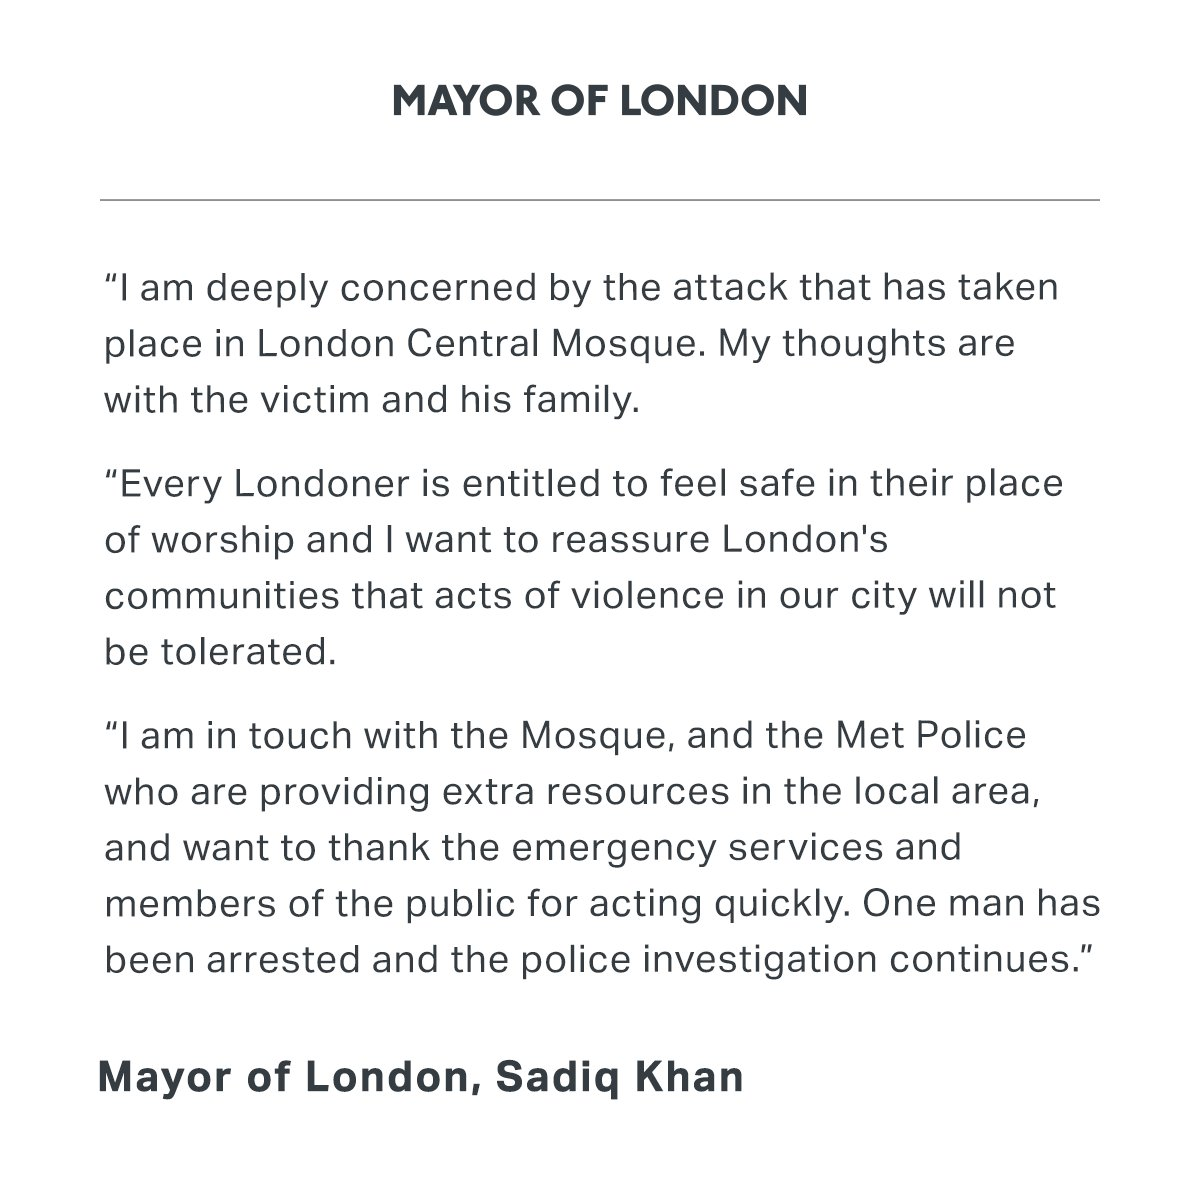 I am deeply concerned by the attack that has taken place in London Central Mosque.